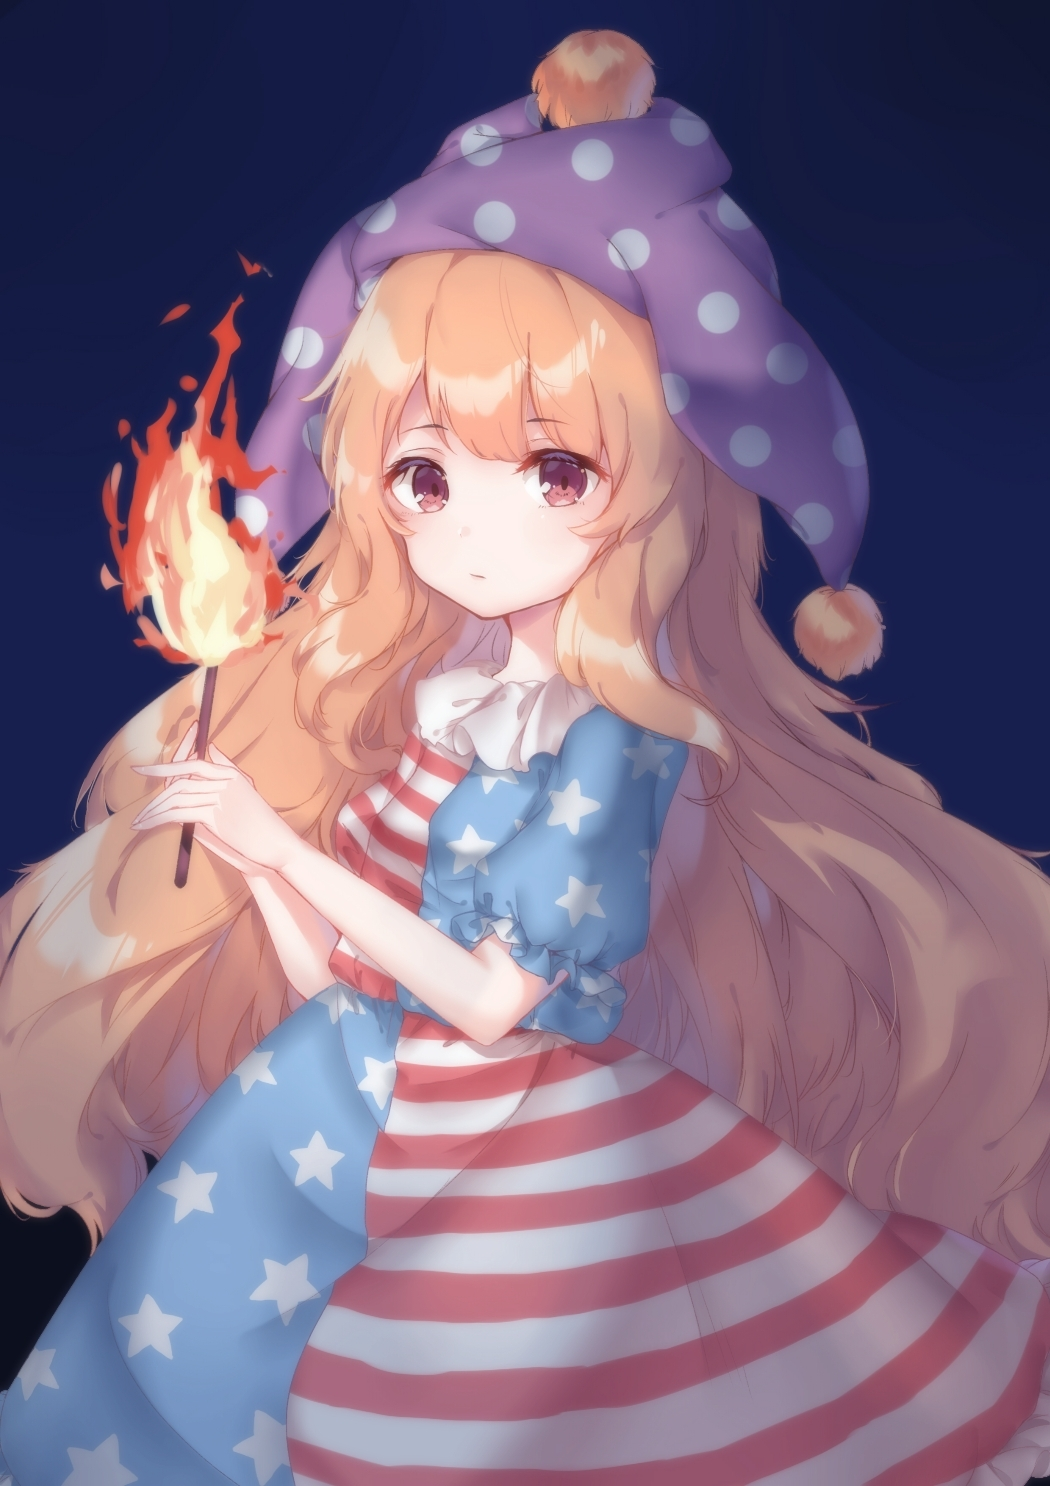 1girl adapted_costume american_flag_shirt american_flag_skirt arms_up black_background blonde_hair clownpiece commentary cowboy_shot expressionless fire from_side hat highres holding_torch jester_cap long_hair looking_at_viewer polka_dot_hat puffy_short_sleeves puffy_sleeves purple_headwear red_eyes short_sleeves simple_background solo standing torch touhou very_long_hair zhi_xixi